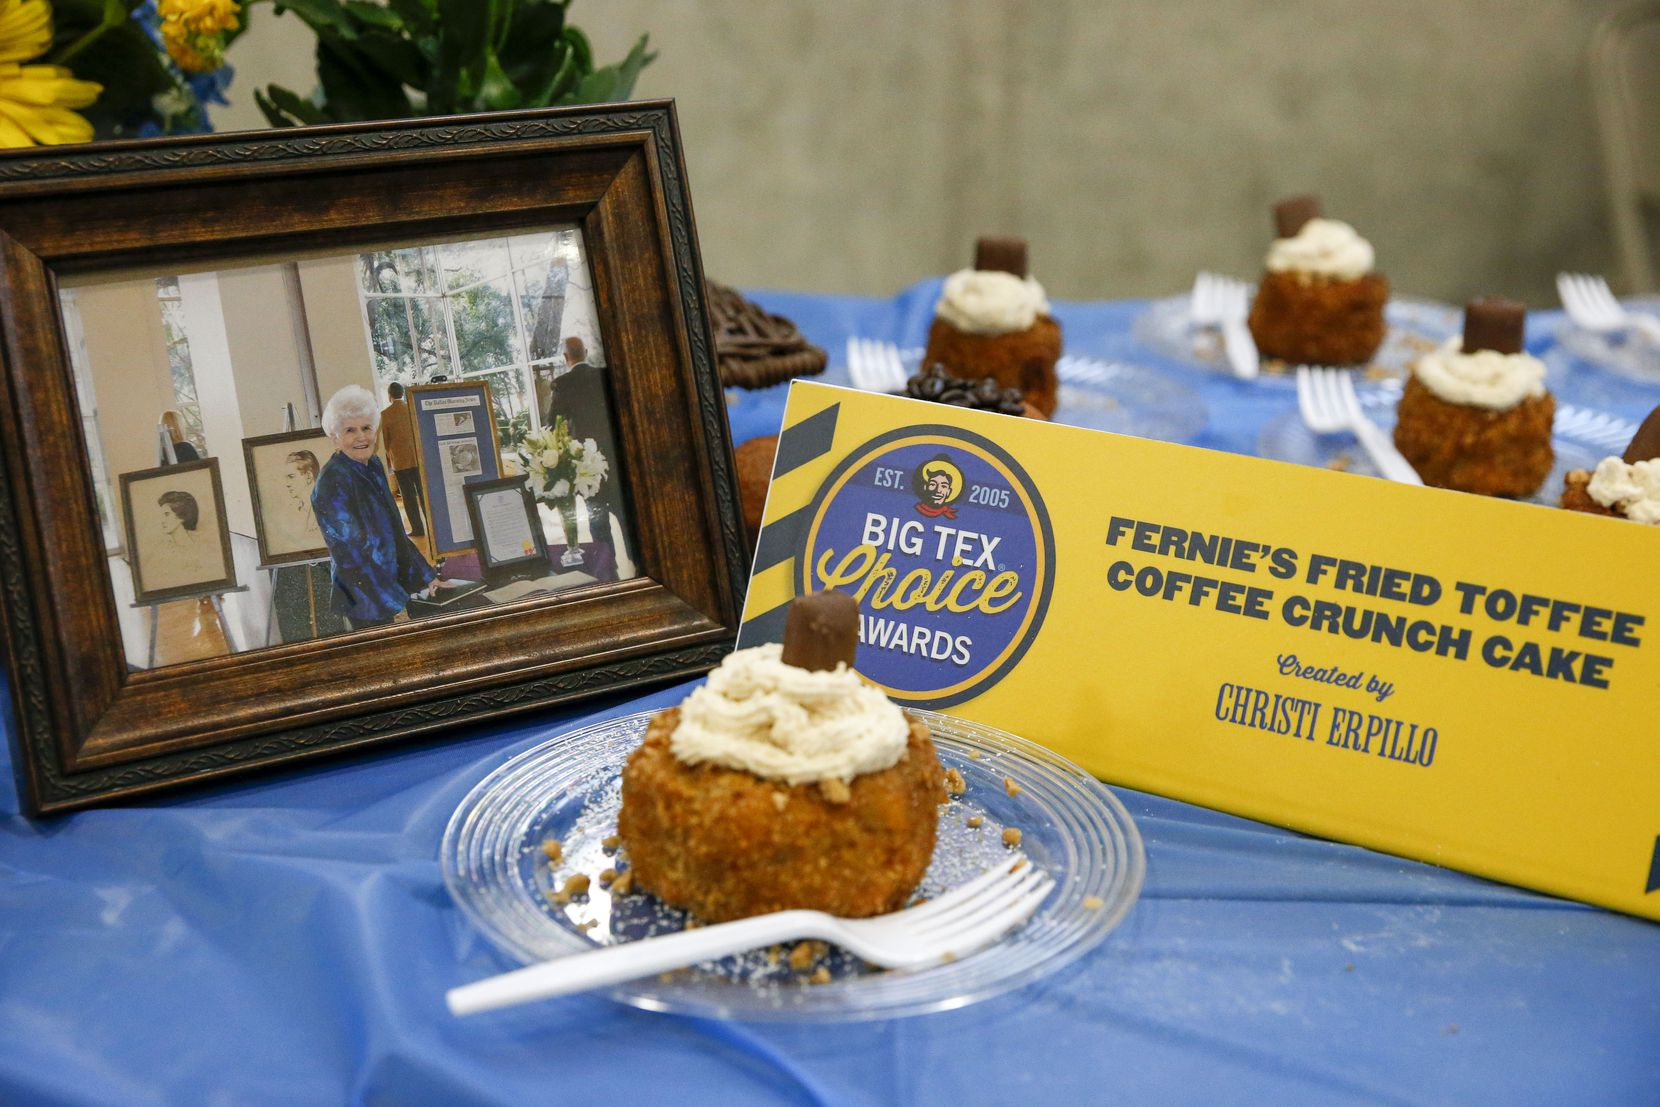 """A picture of Wanda """"Fernie"""" Winter rests on the table of her daughter Christi Erpillo's entry during the unveiling of the Big Tex Choice Awards finalists at the Briscoe Carpenter Livestock Center at Fair Park on Wednesday, Aug. 11, 2021, in Dallas."""